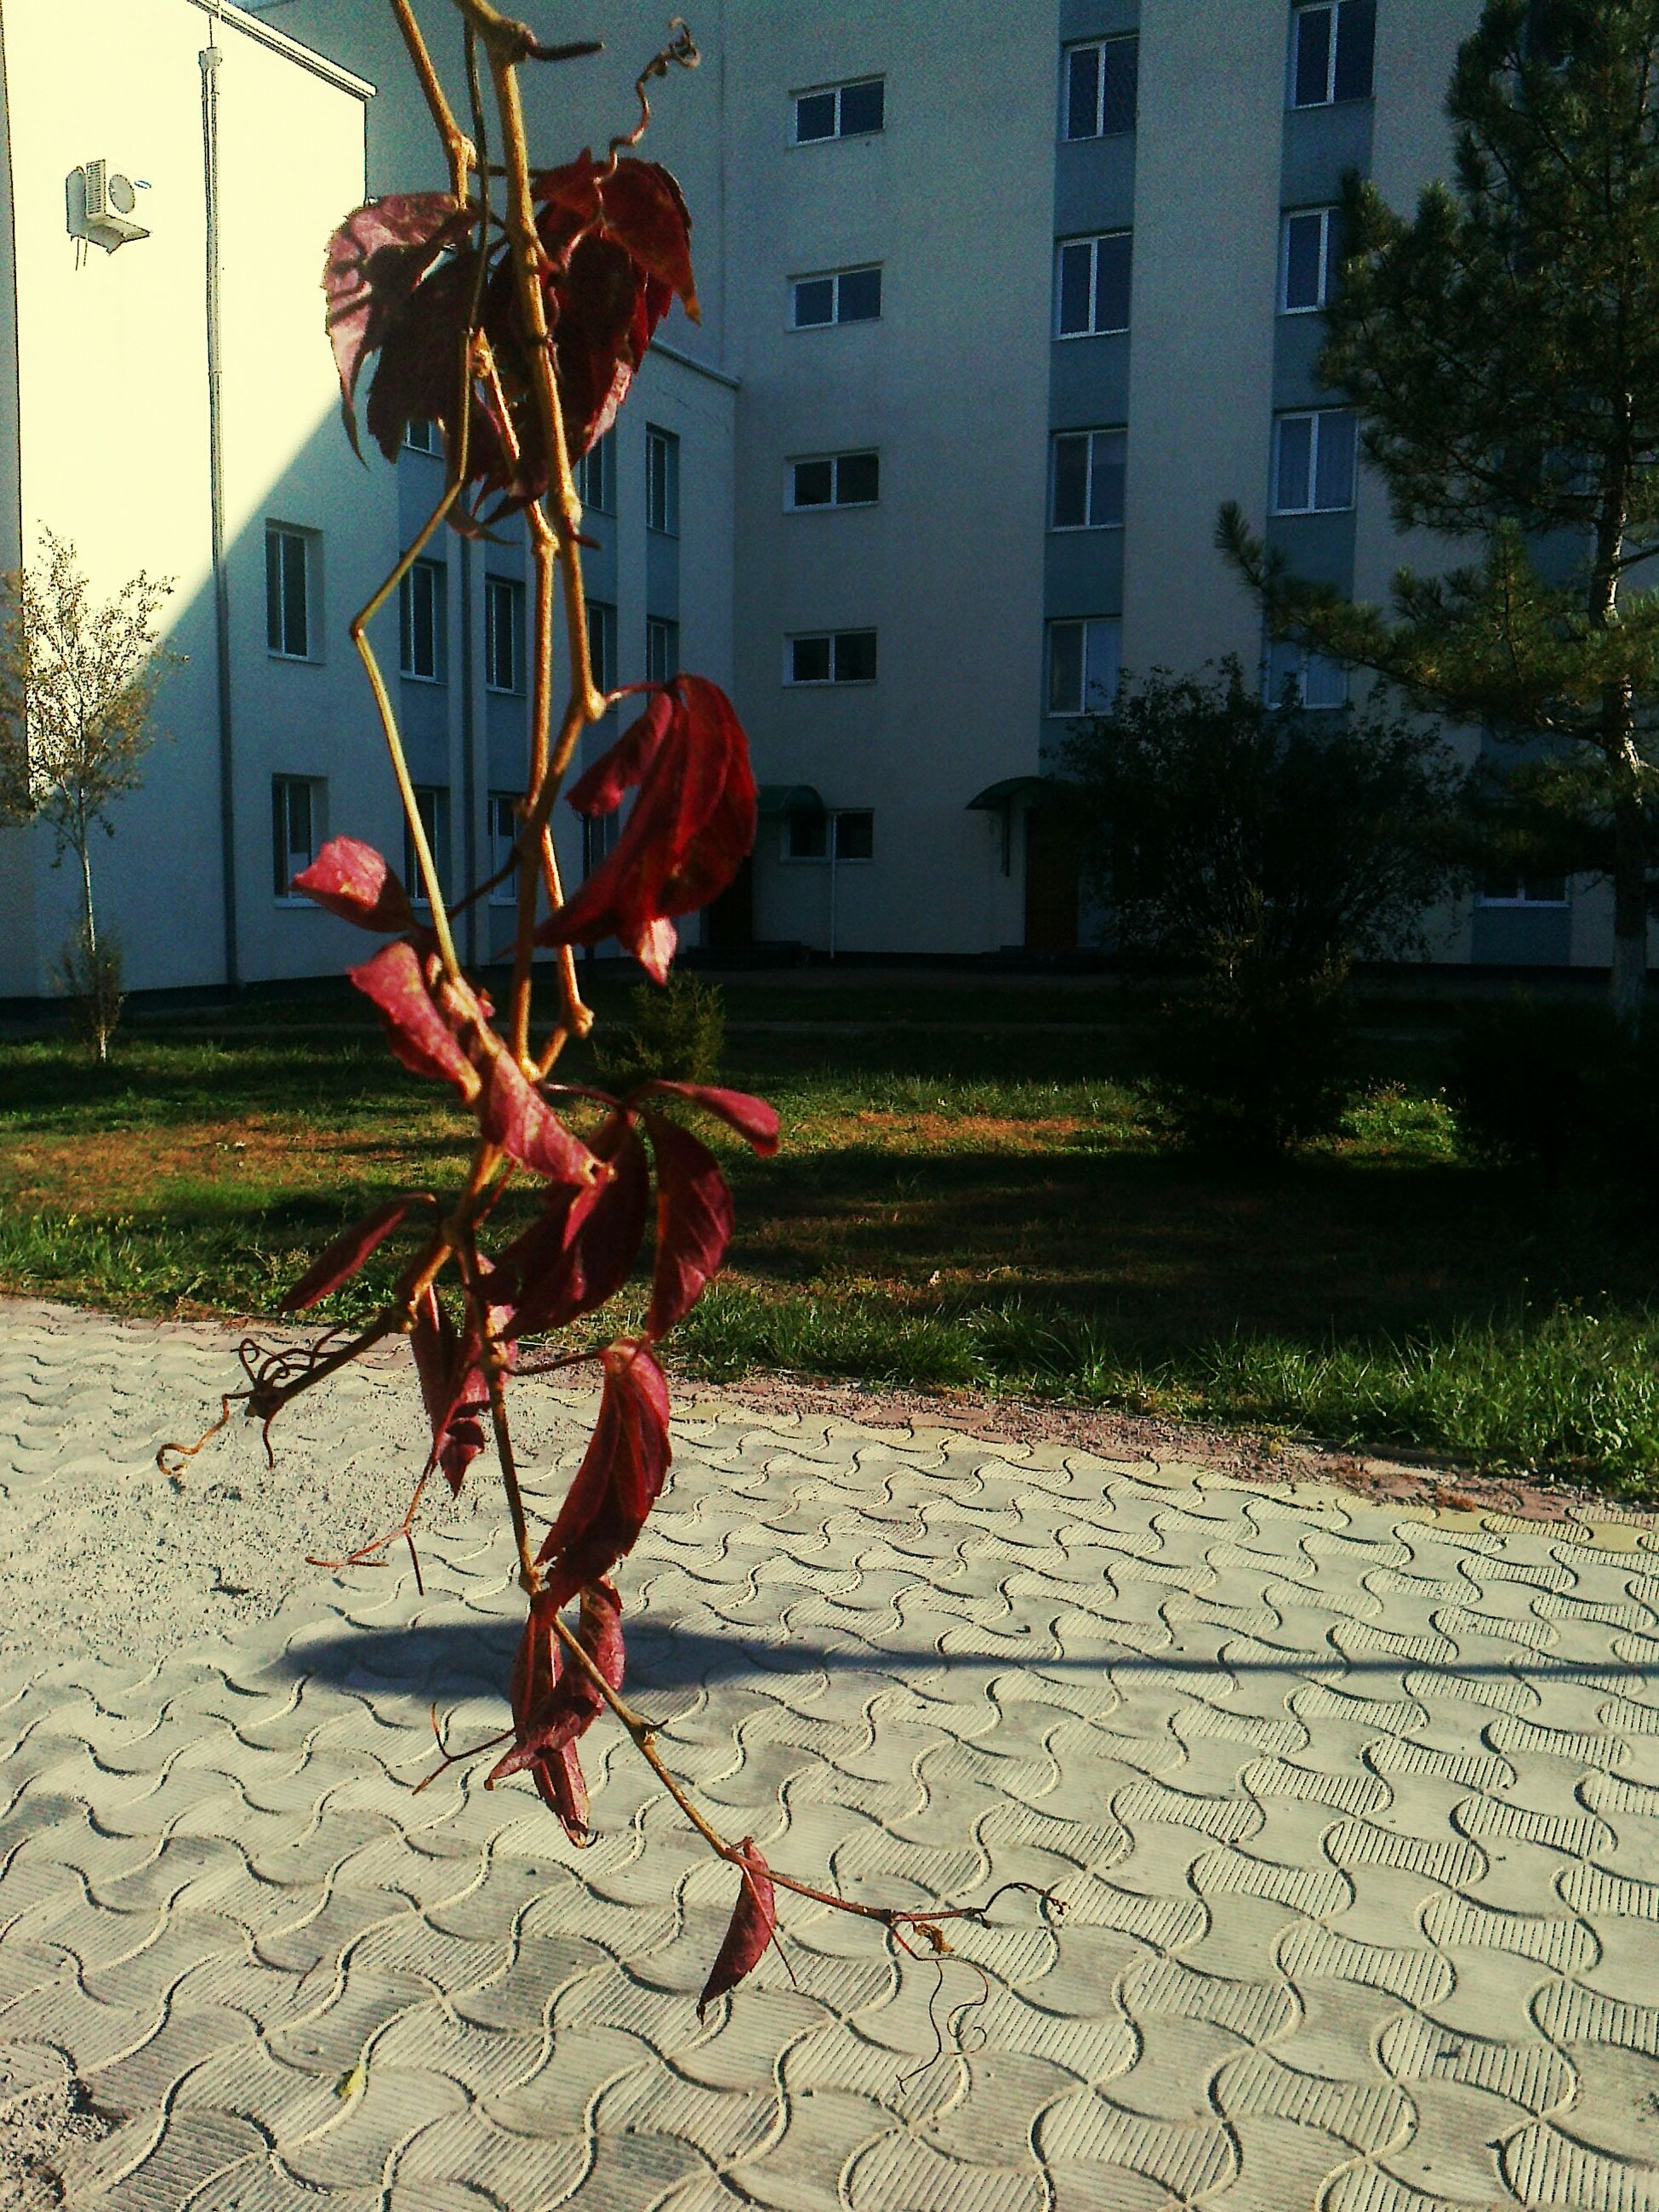 building exterior, architecture, built structure, outdoors, flower, no people, growth, city, day, plant, residential building, tree, red, nature